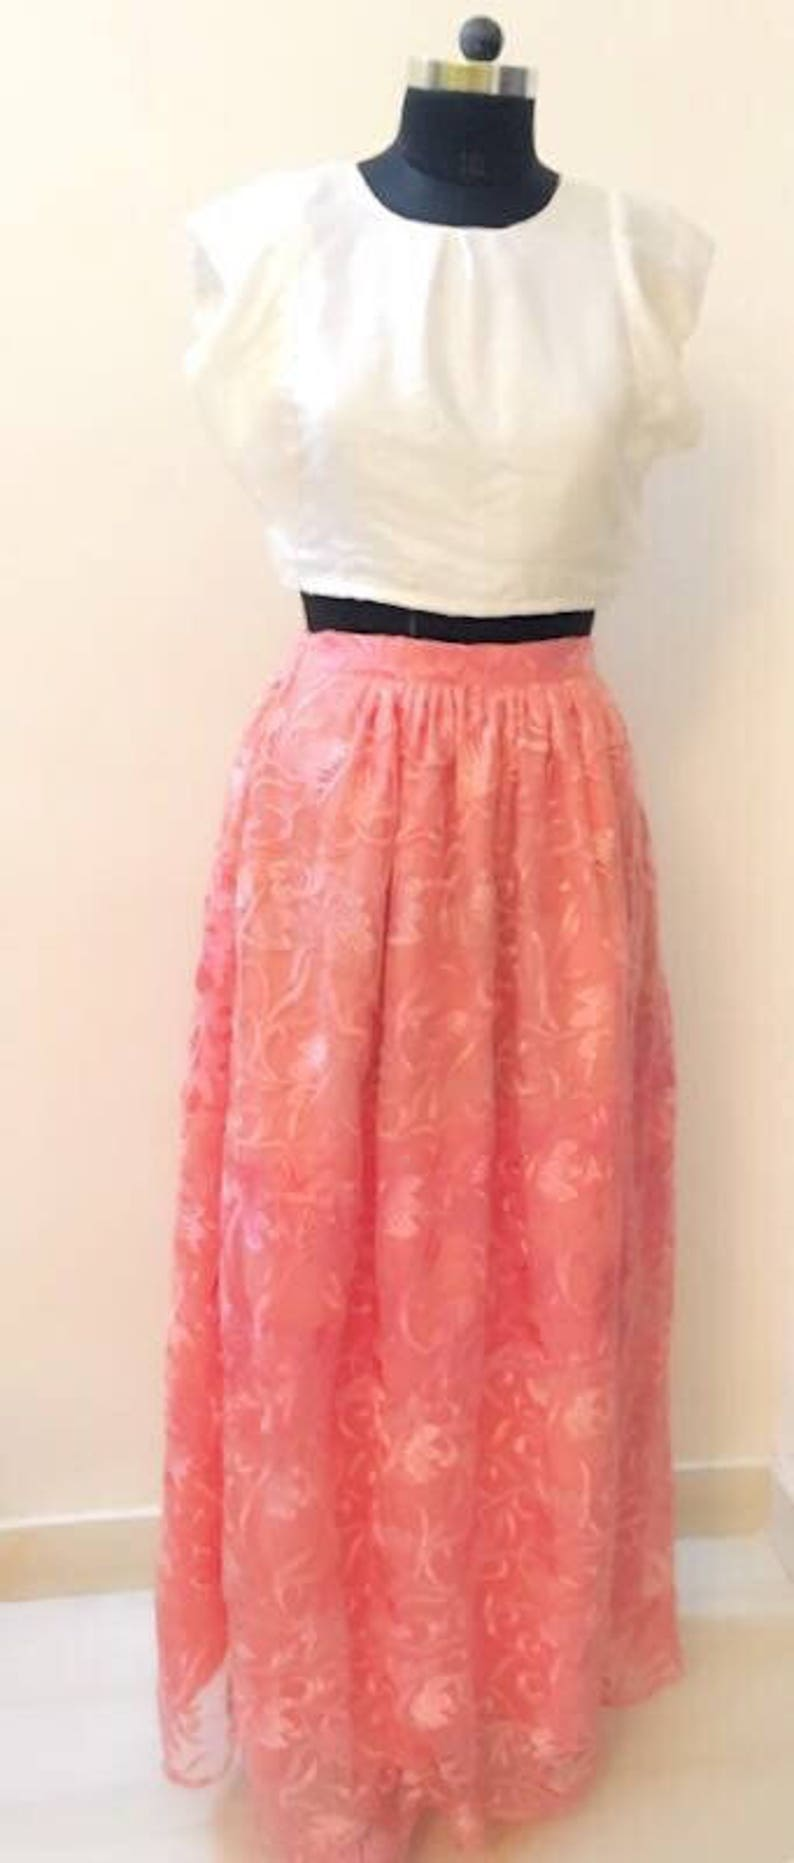 84c53dbce78 White Satin Crop Top with Pink Flared Floor Length Skirt | Etsy